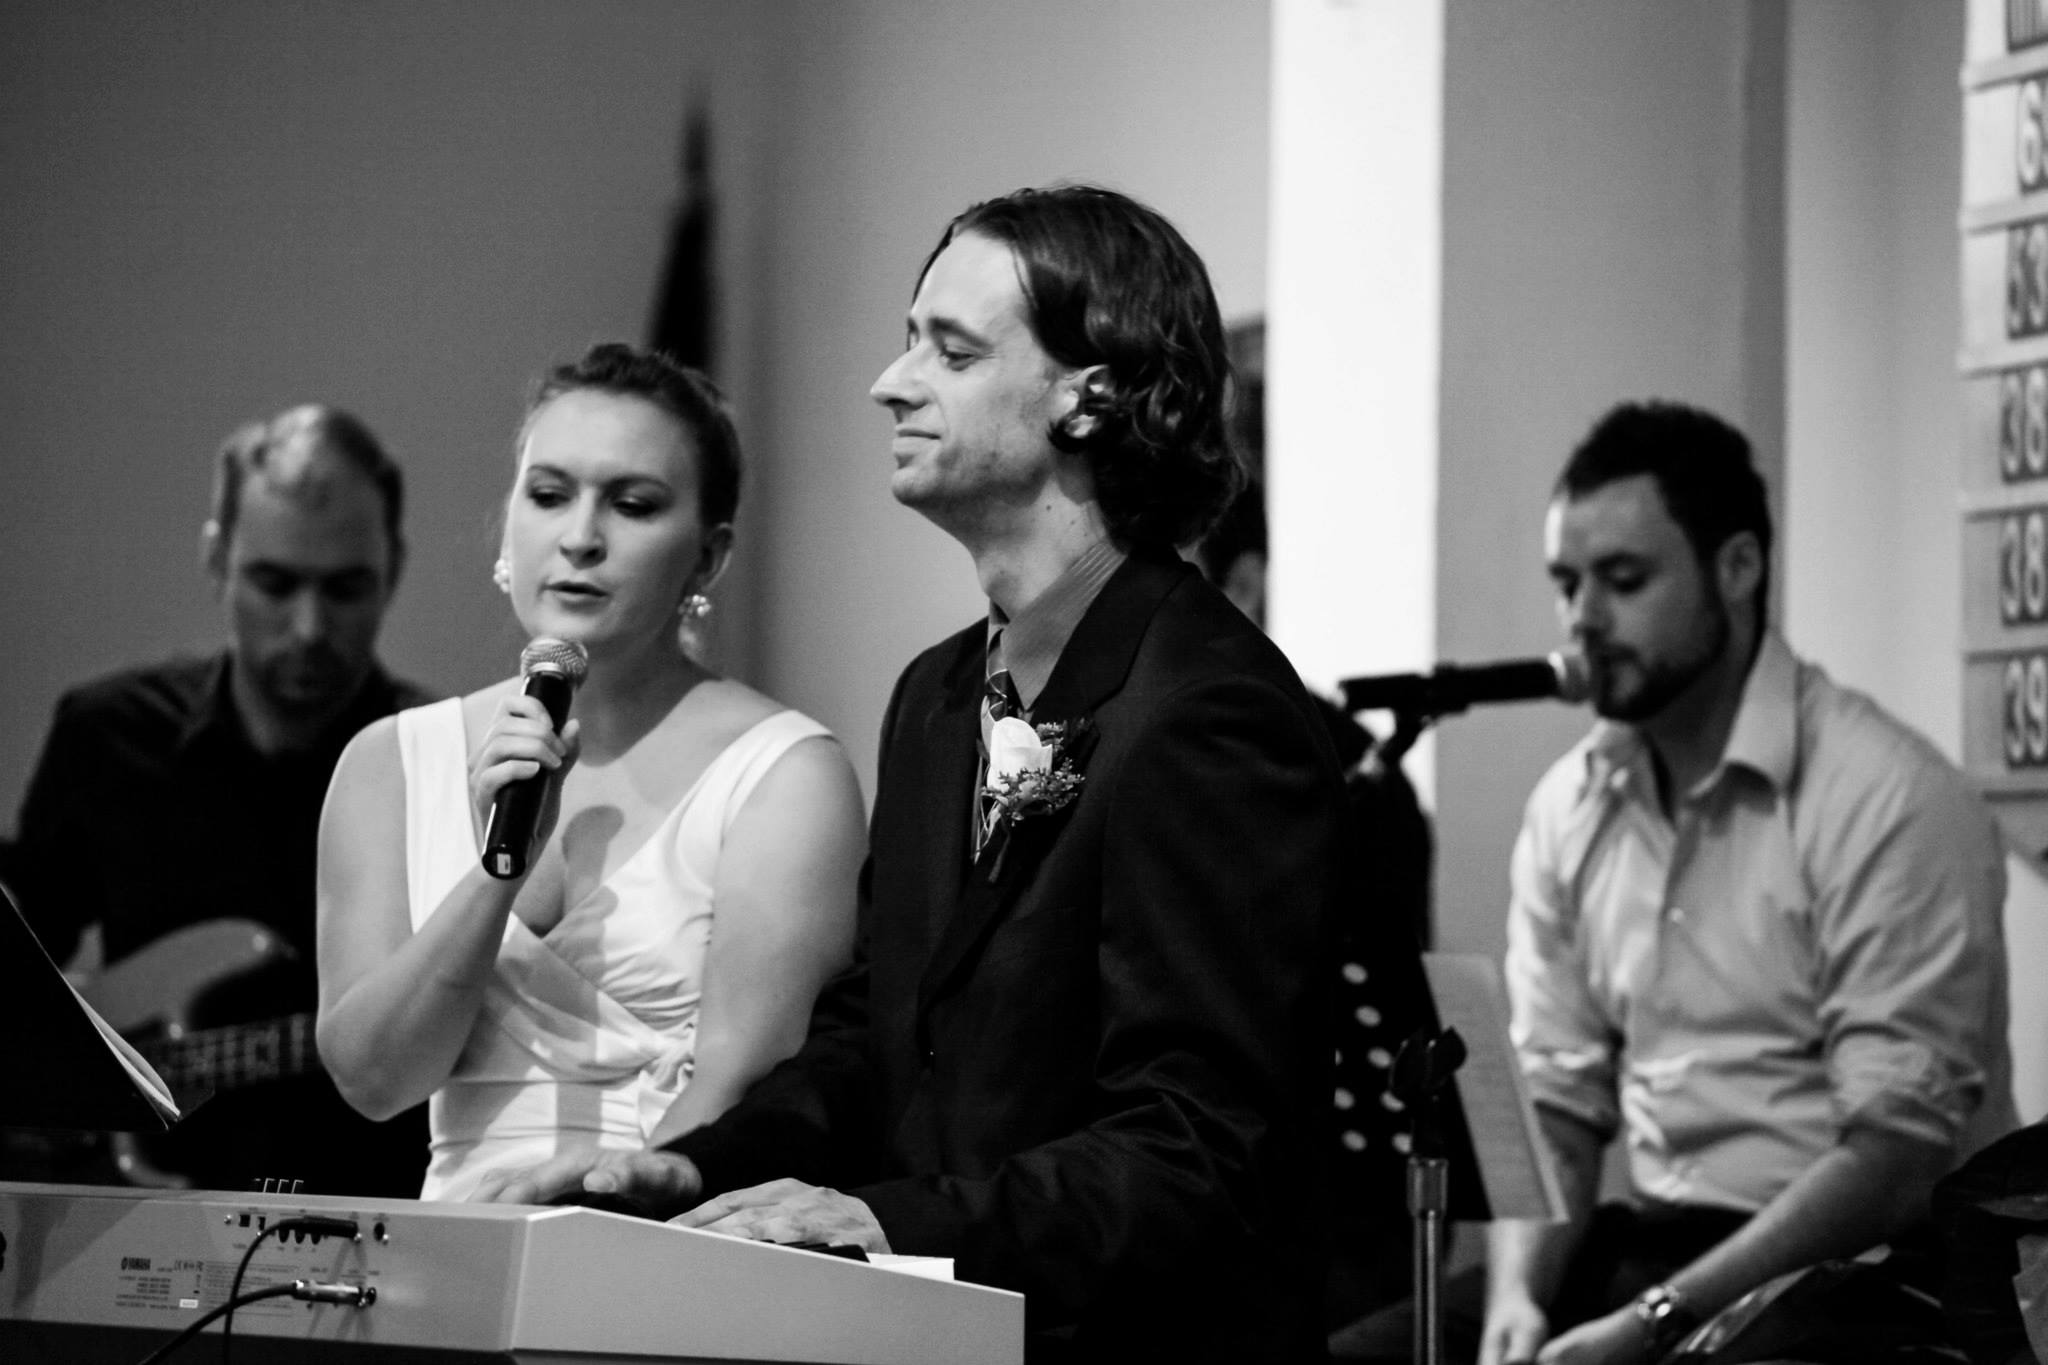 Taken with a great camera, the same one many wedding professionals use, but still dark and grainy.